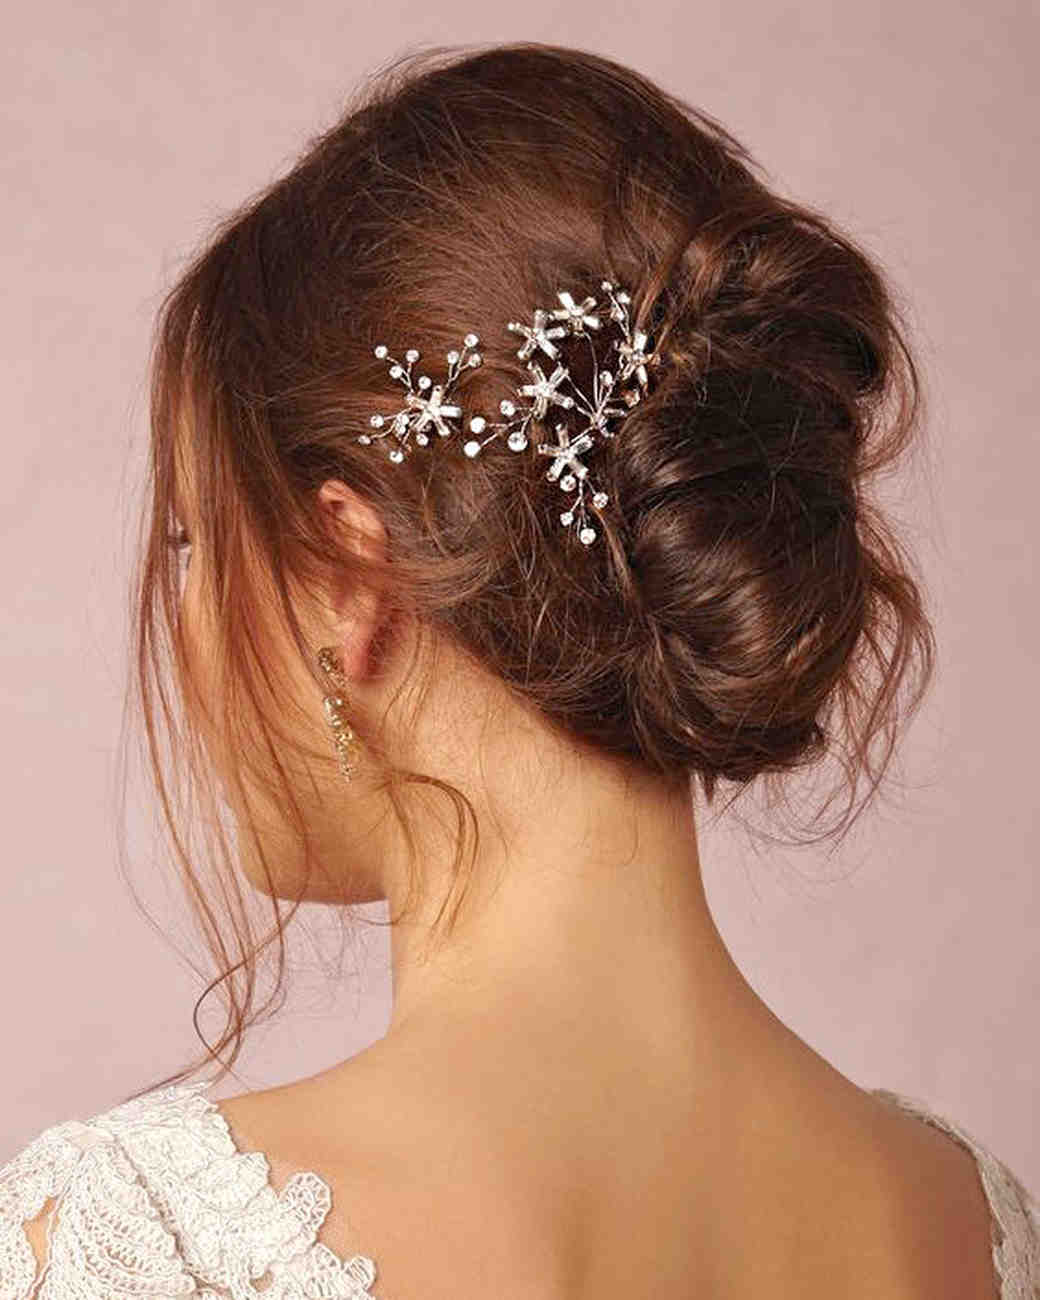 Celestial-Inspired Headpieces for a Winter Wedding ...